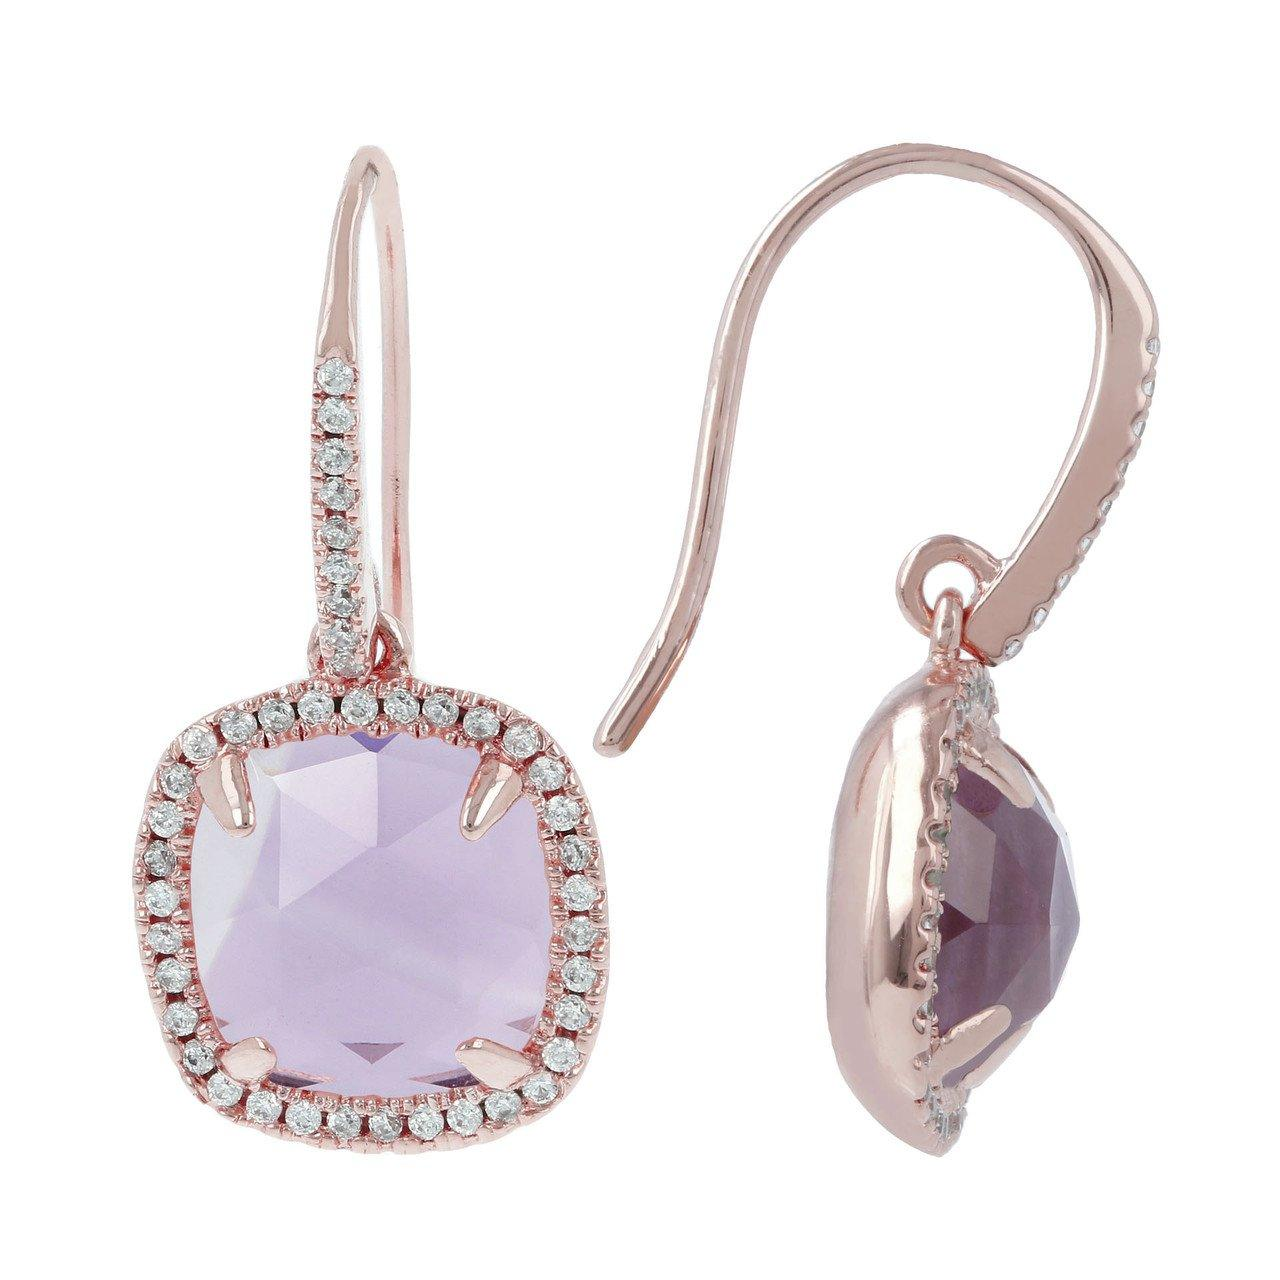 BRONZALLURE Cushion Cut CZ Stud Earrings (Amethyst)